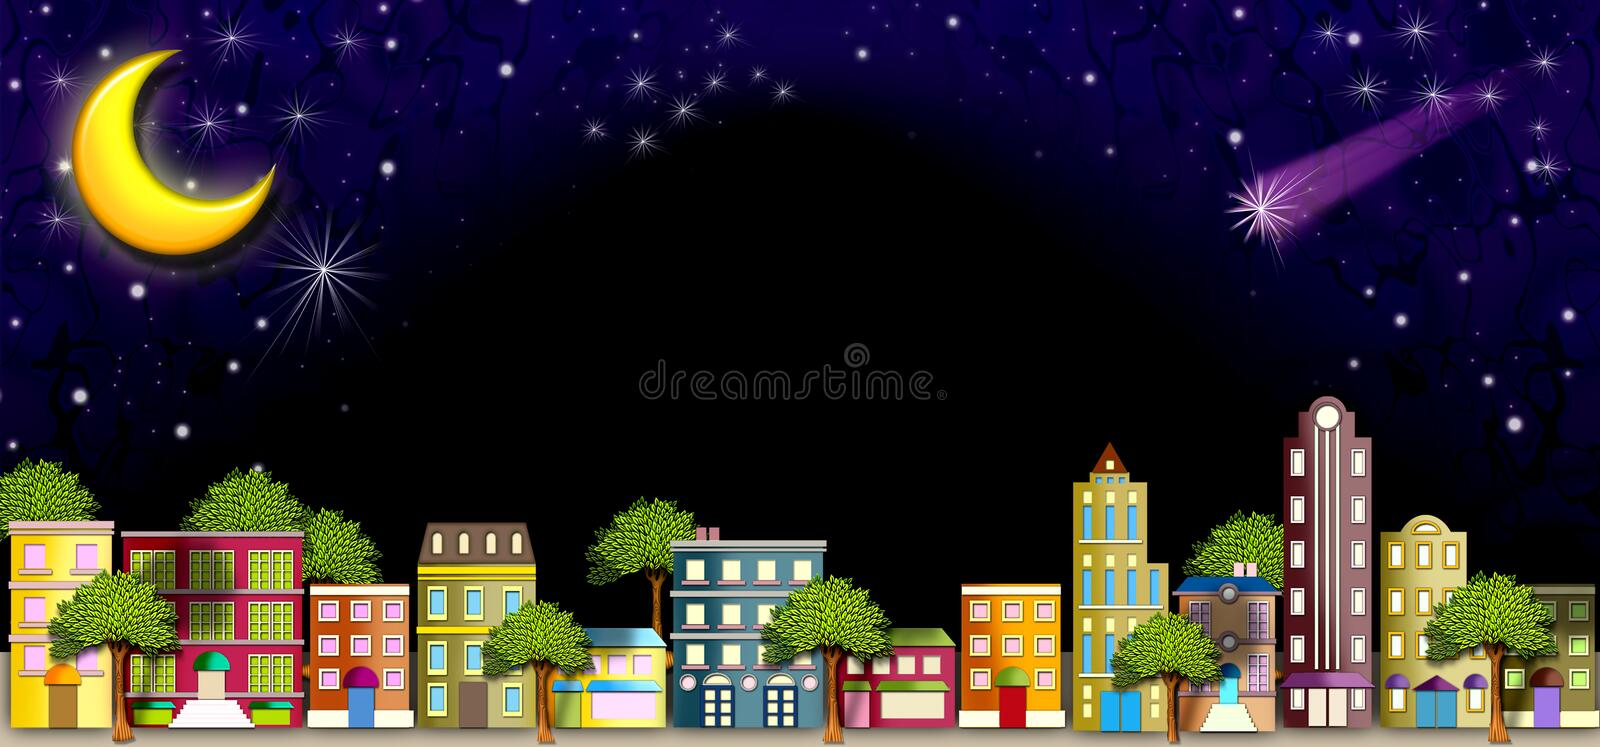 Neighborhood street at Night. A colorful illustration of a quaint street scene with apartment houses & beautiful trees undera glowing canopy of twinkling stars